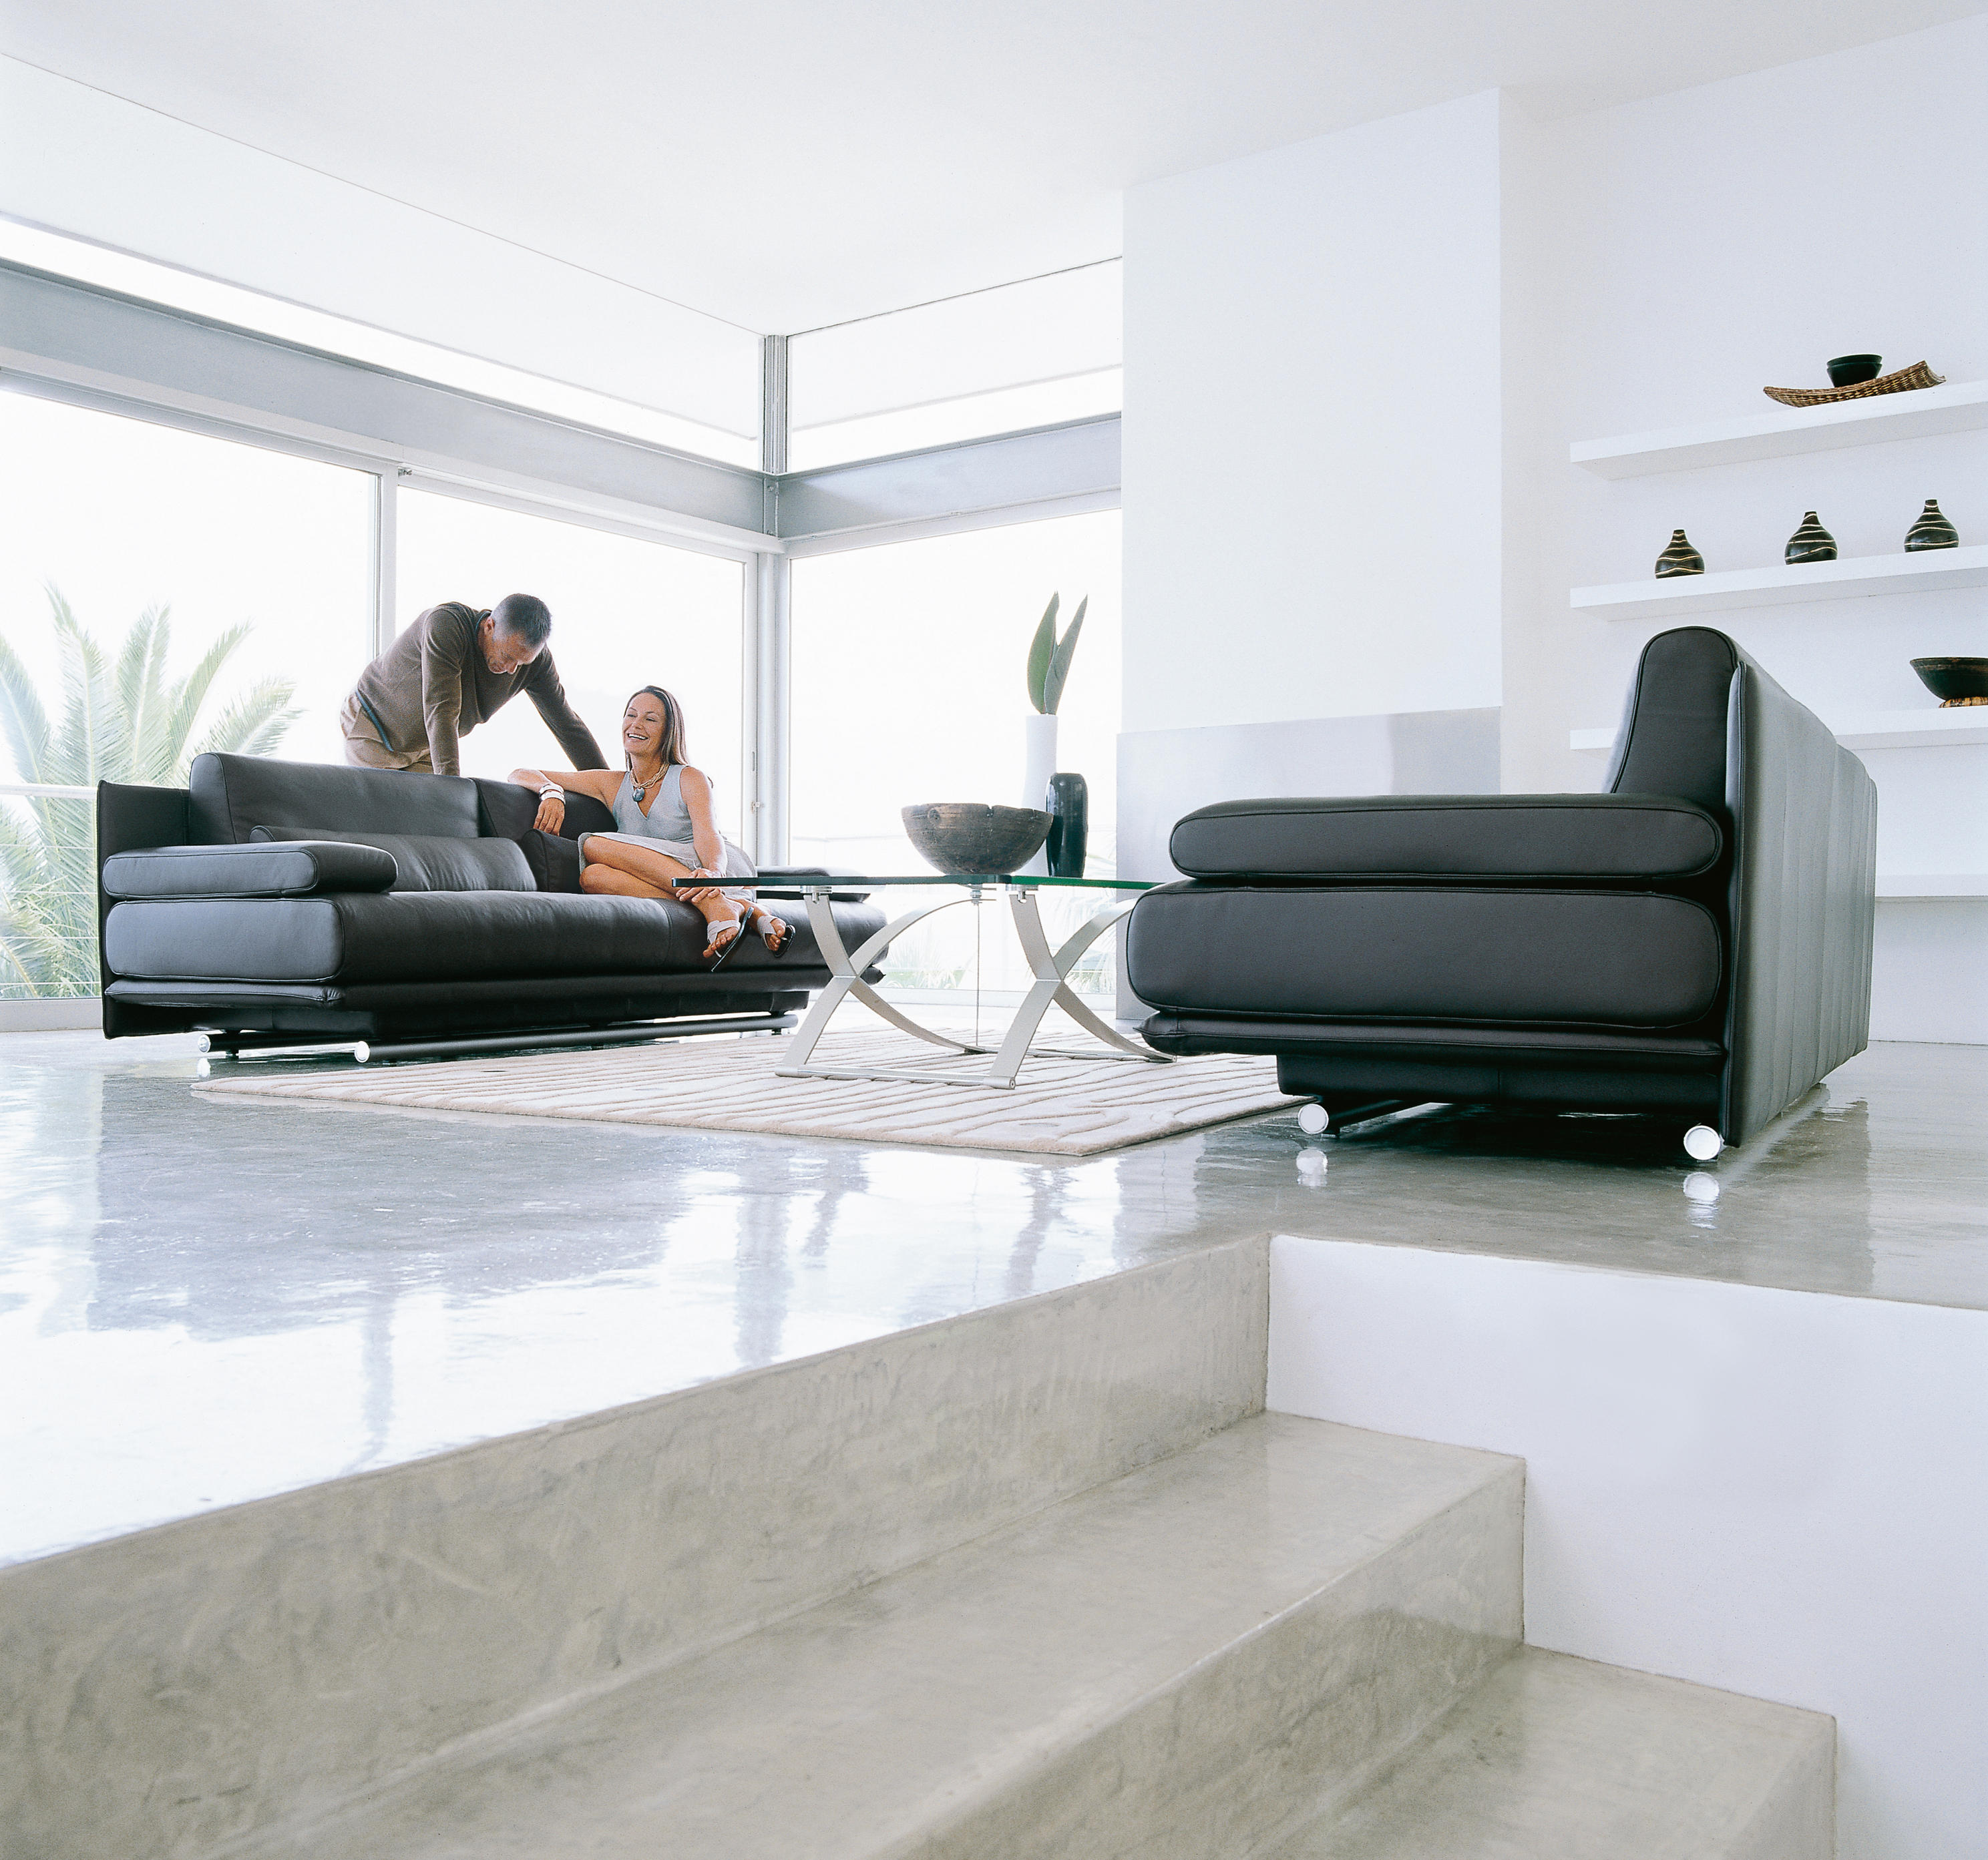 rolf benz 6500 lounge sofas from rolf benz architonic. Black Bedroom Furniture Sets. Home Design Ideas